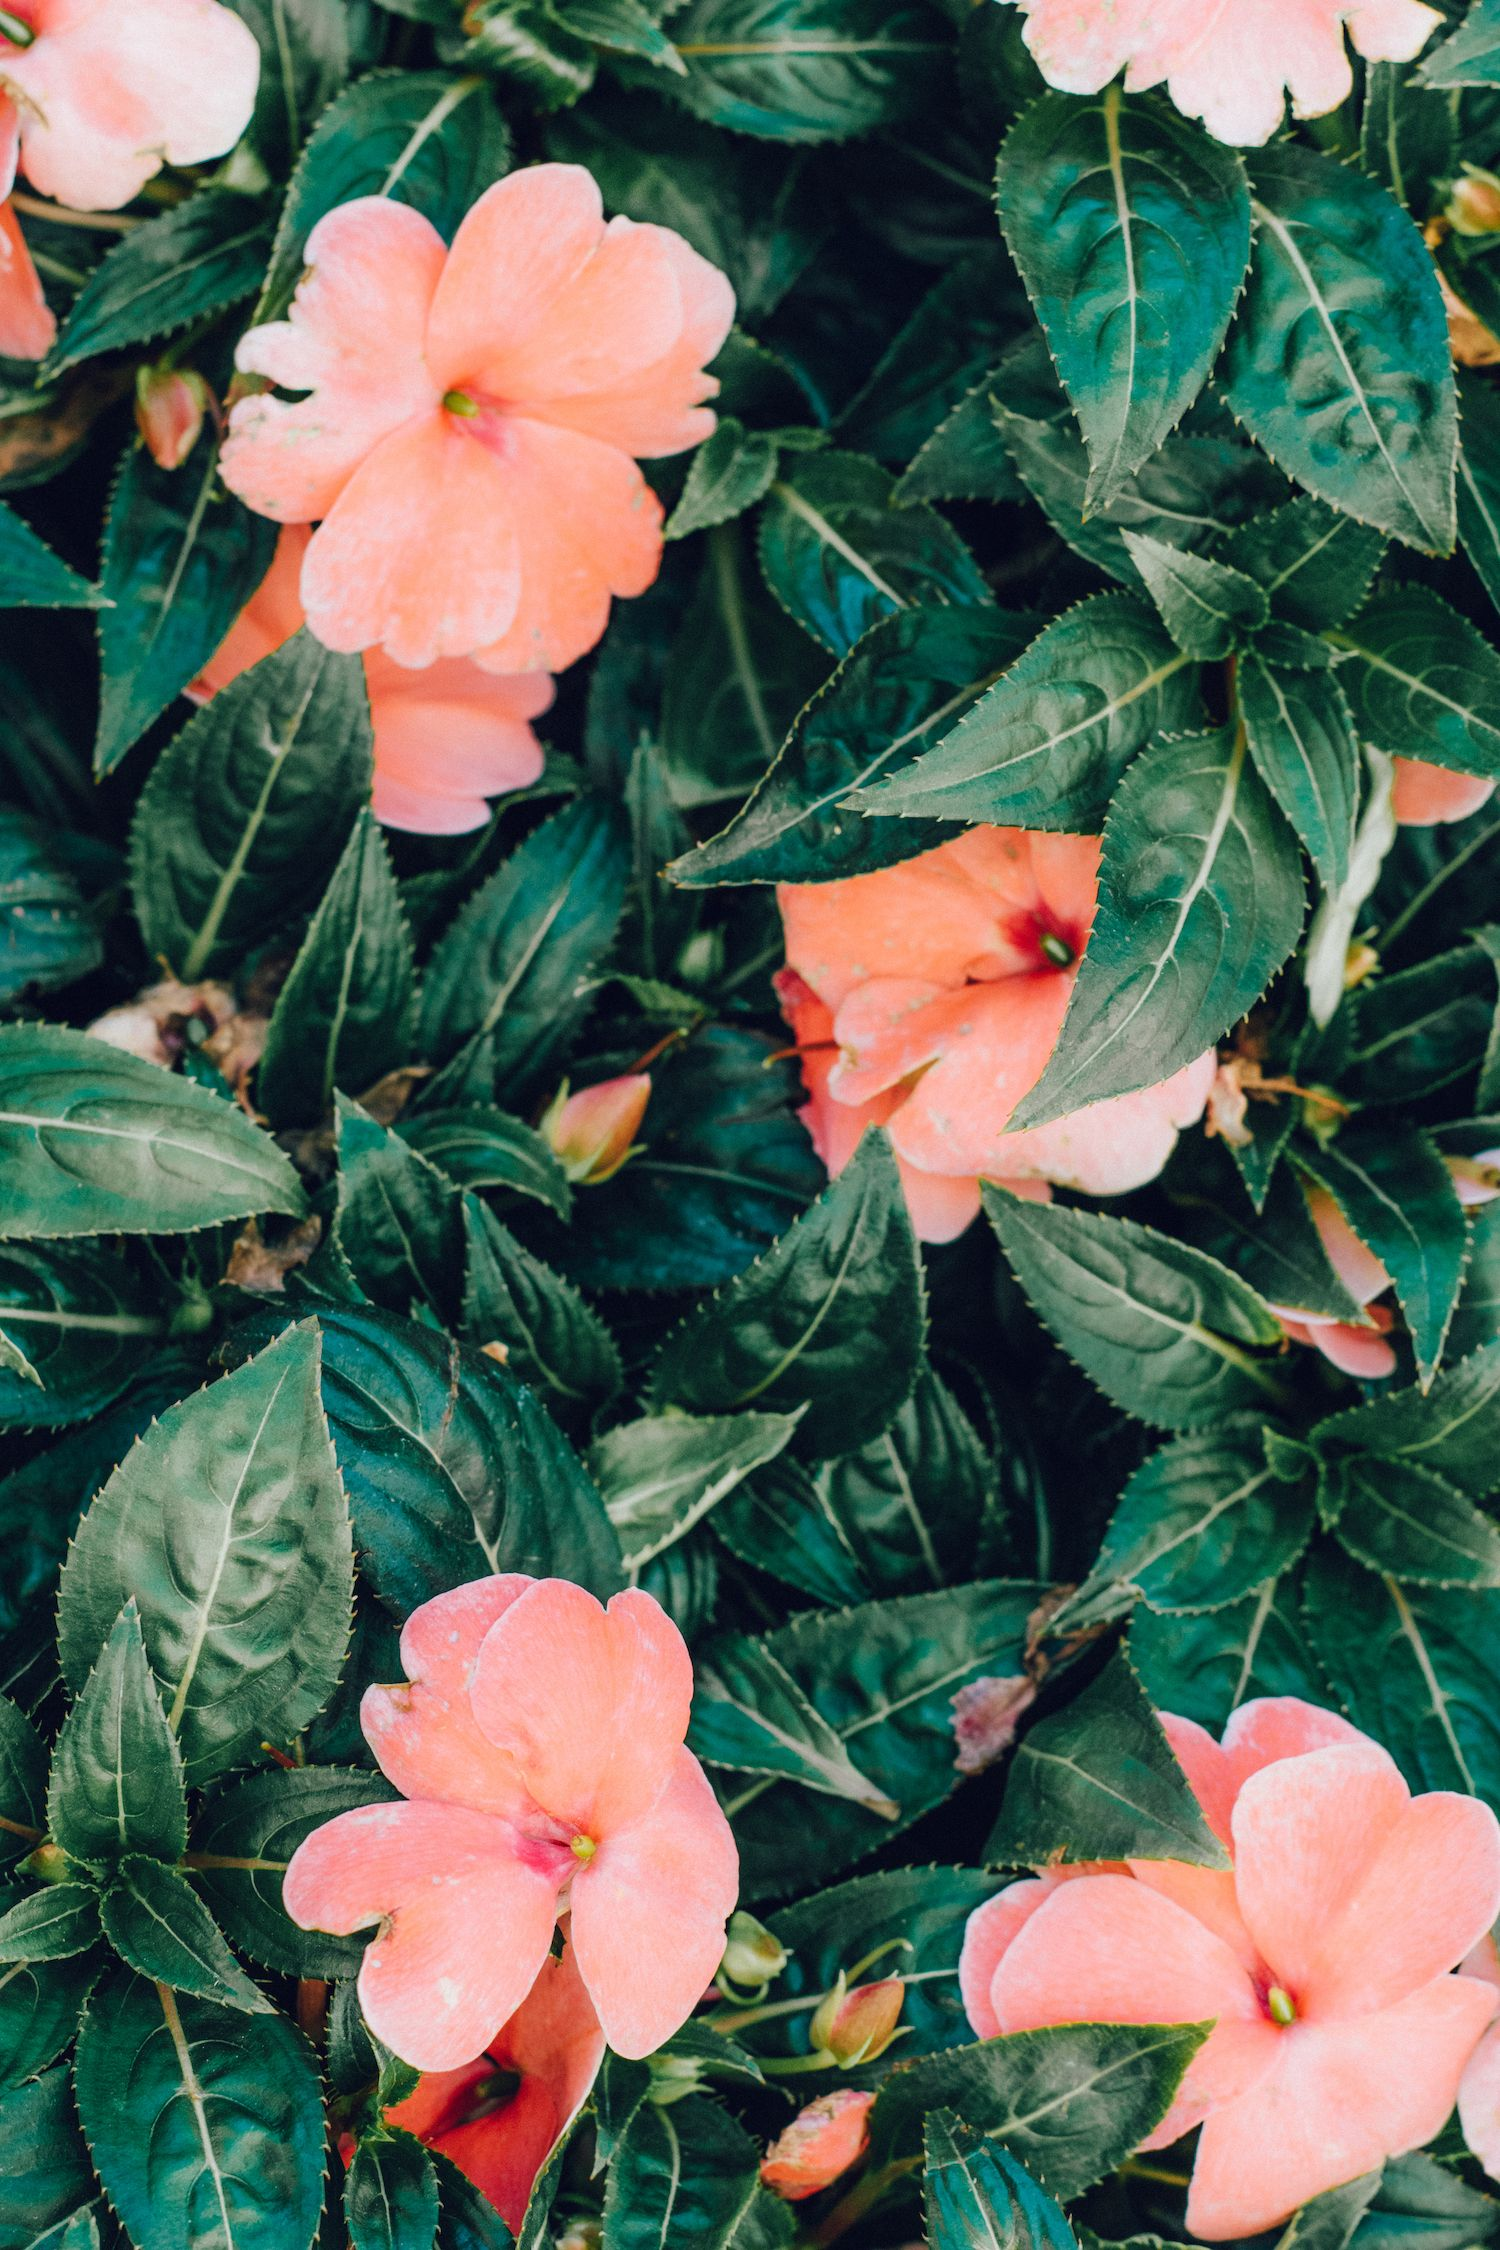 2560×1440 57+ plain pink wallpapers on wallpaperplay>. Pink Flowers | Wall Art | Flower background iphone, Tumblr ...